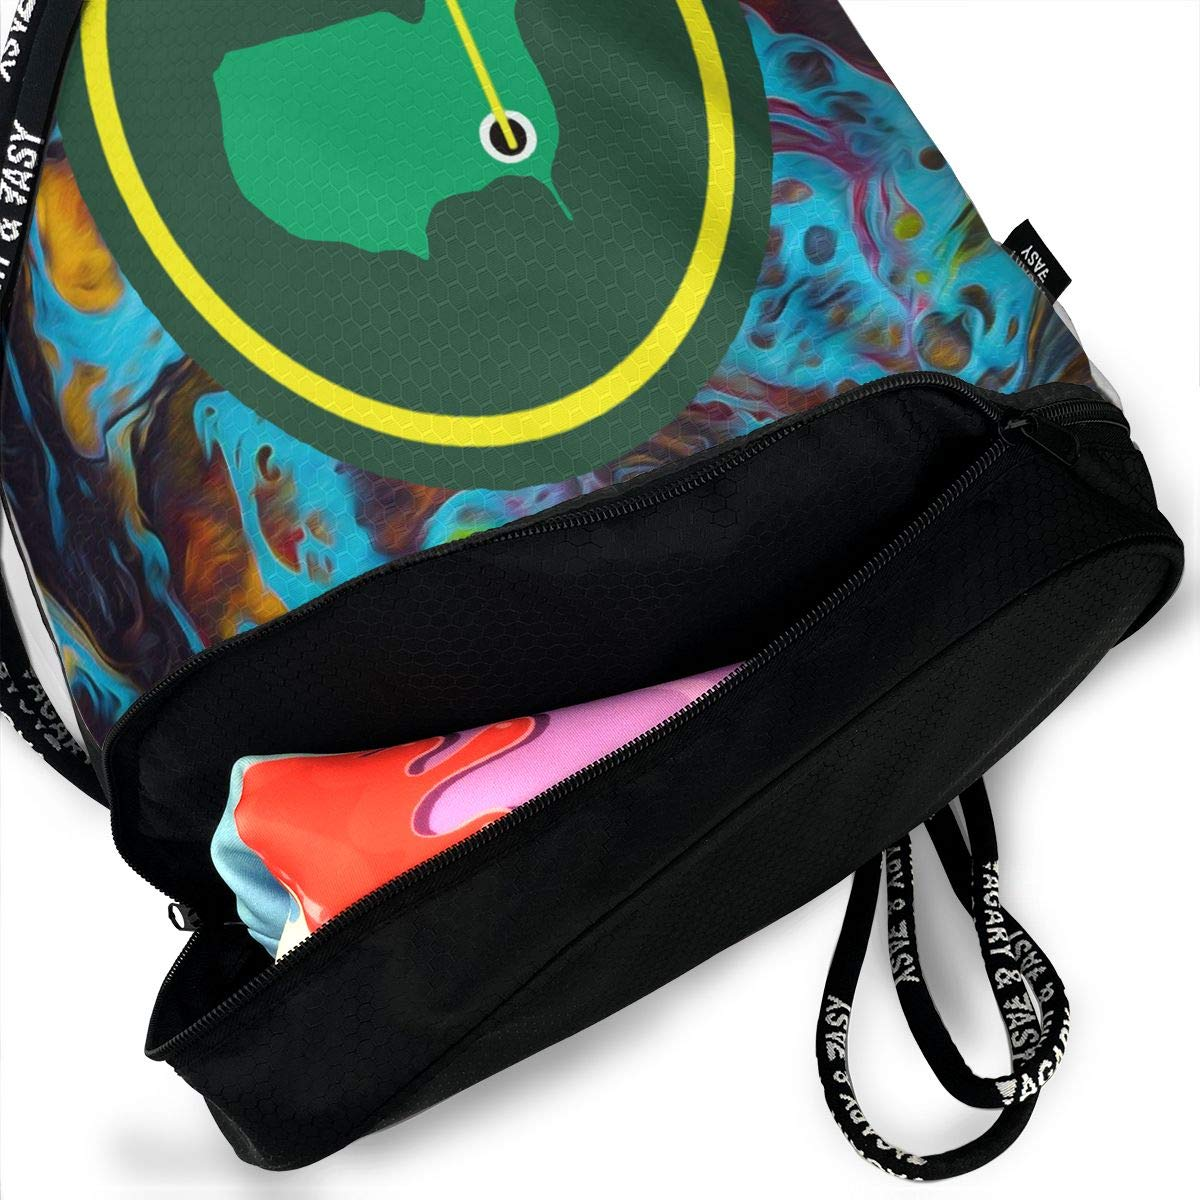 Drawstring Bag Green Jacket Patch Gym Bag Sport Backpack Shoulder Bags Travel College Rucksack